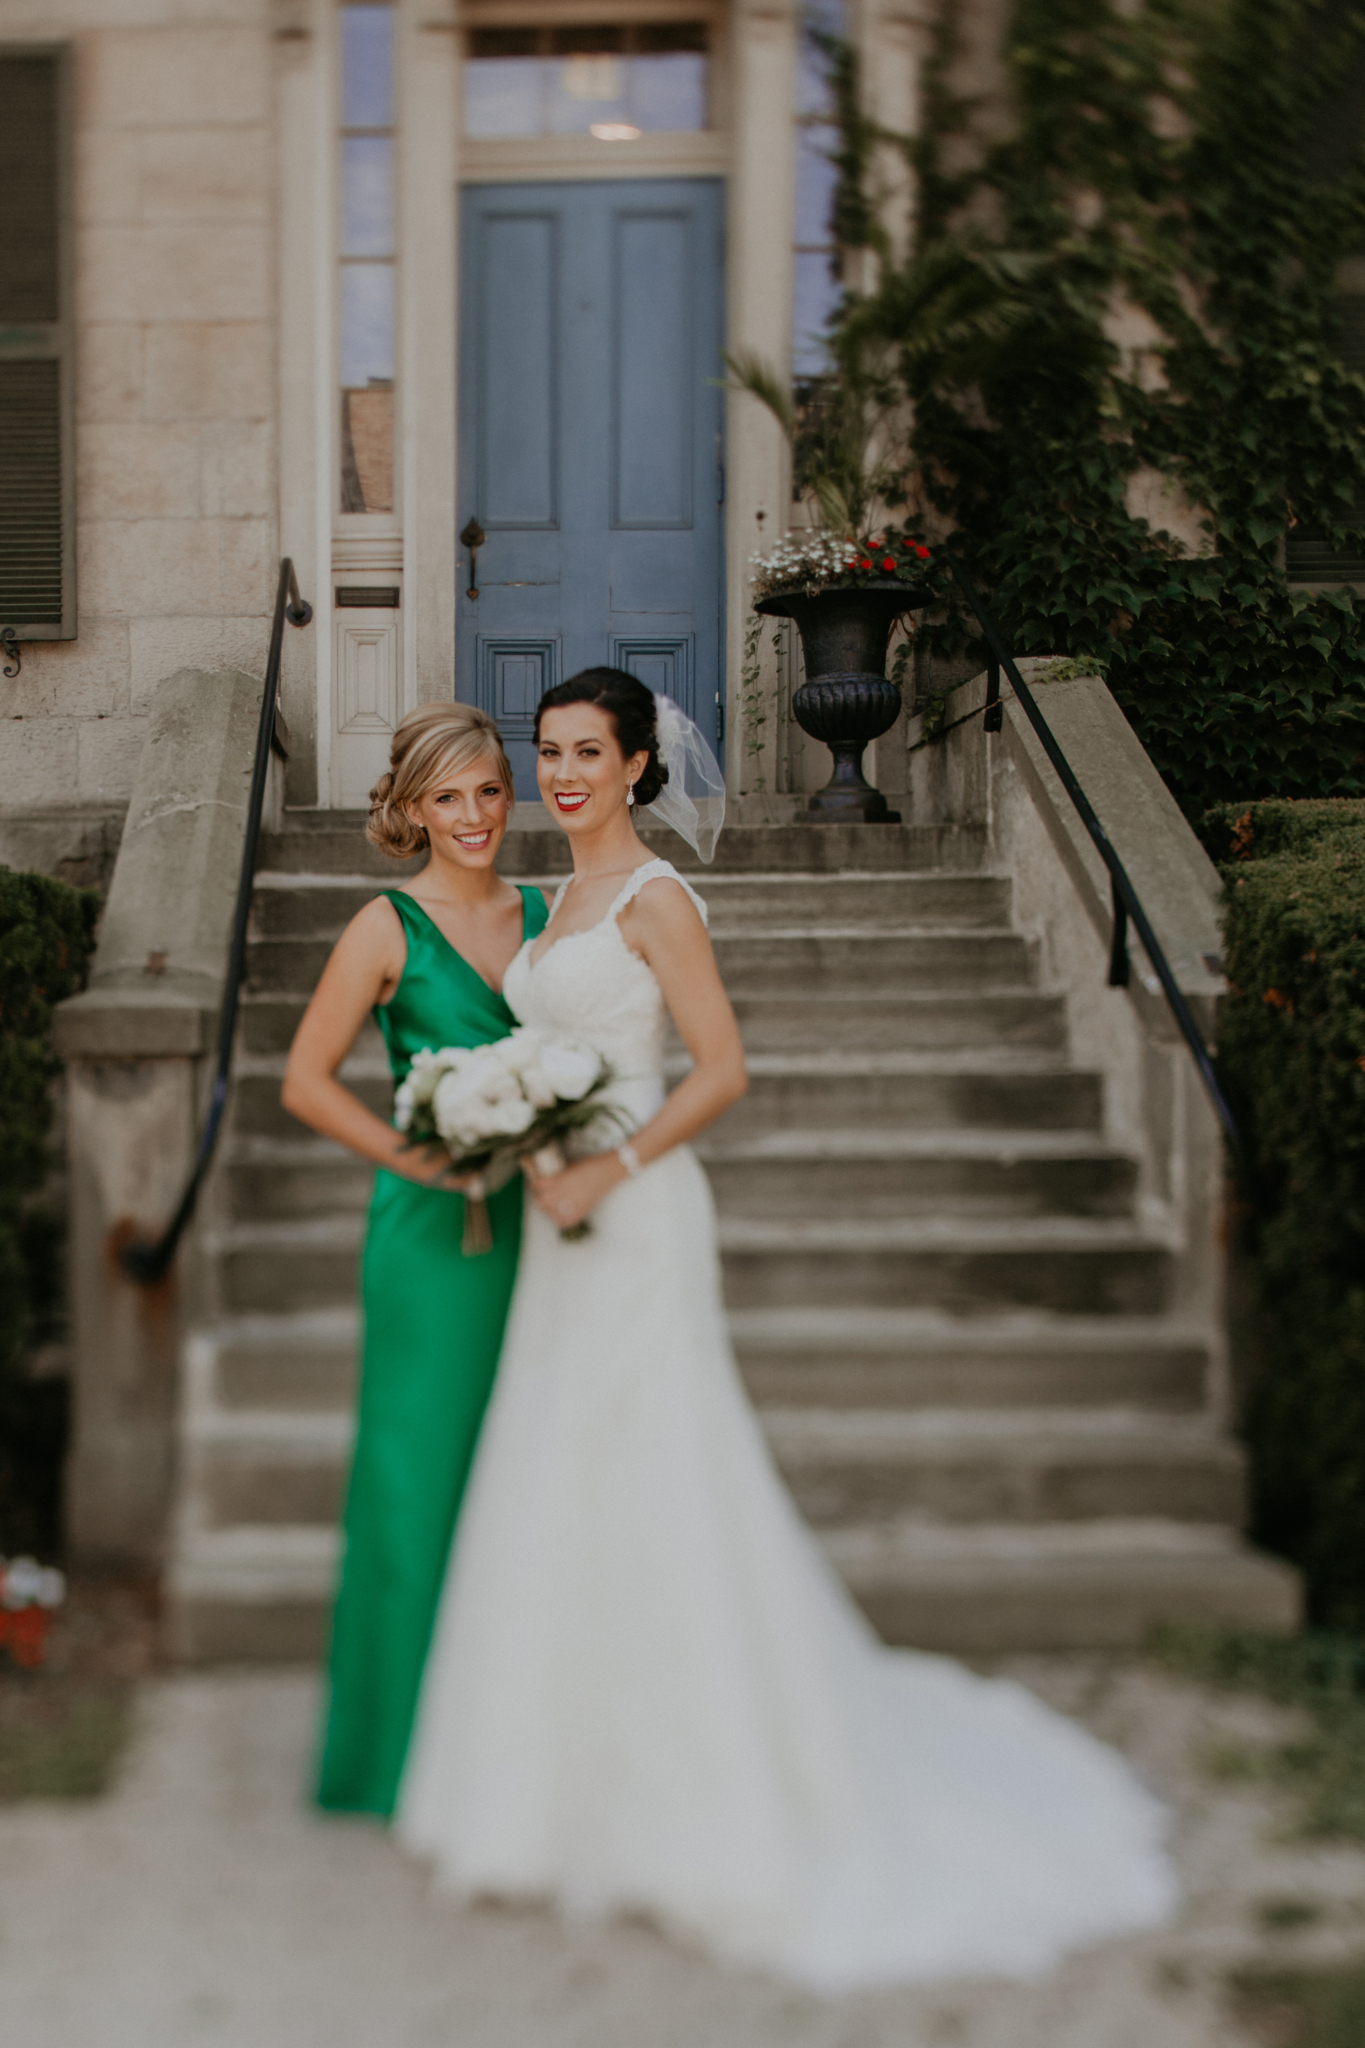 Portrait of bride and bridesmaid on wedding day